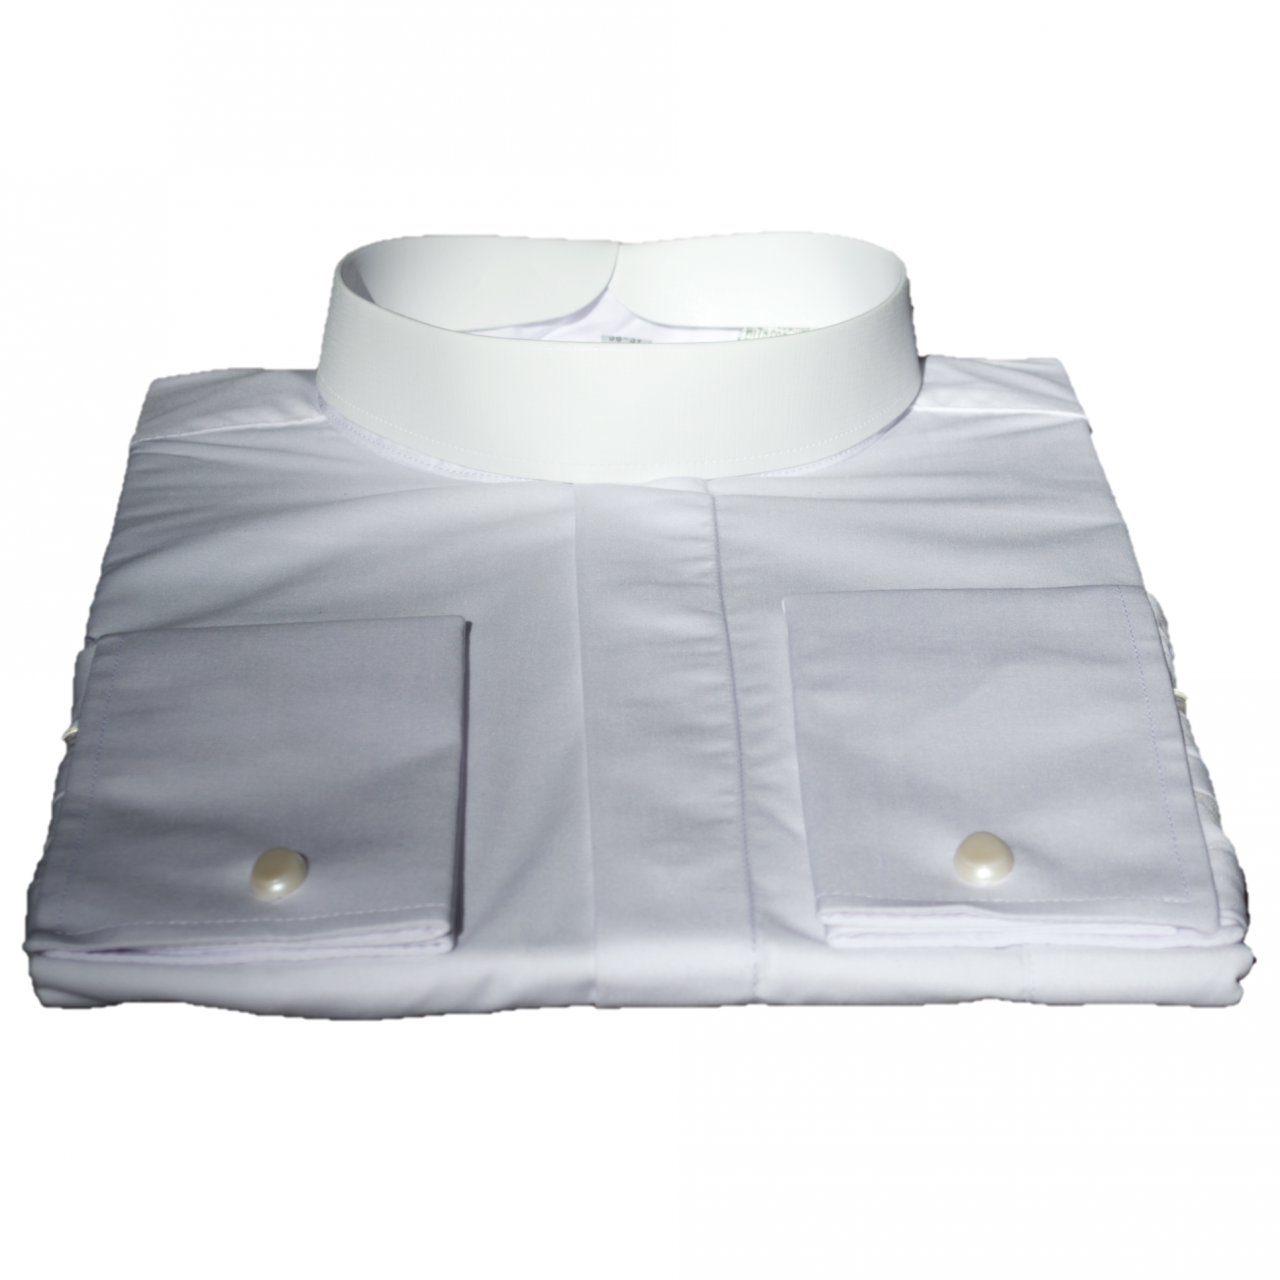 203. Men's Long-Sleeve Full-Collar Banded Clergy Shirt - White